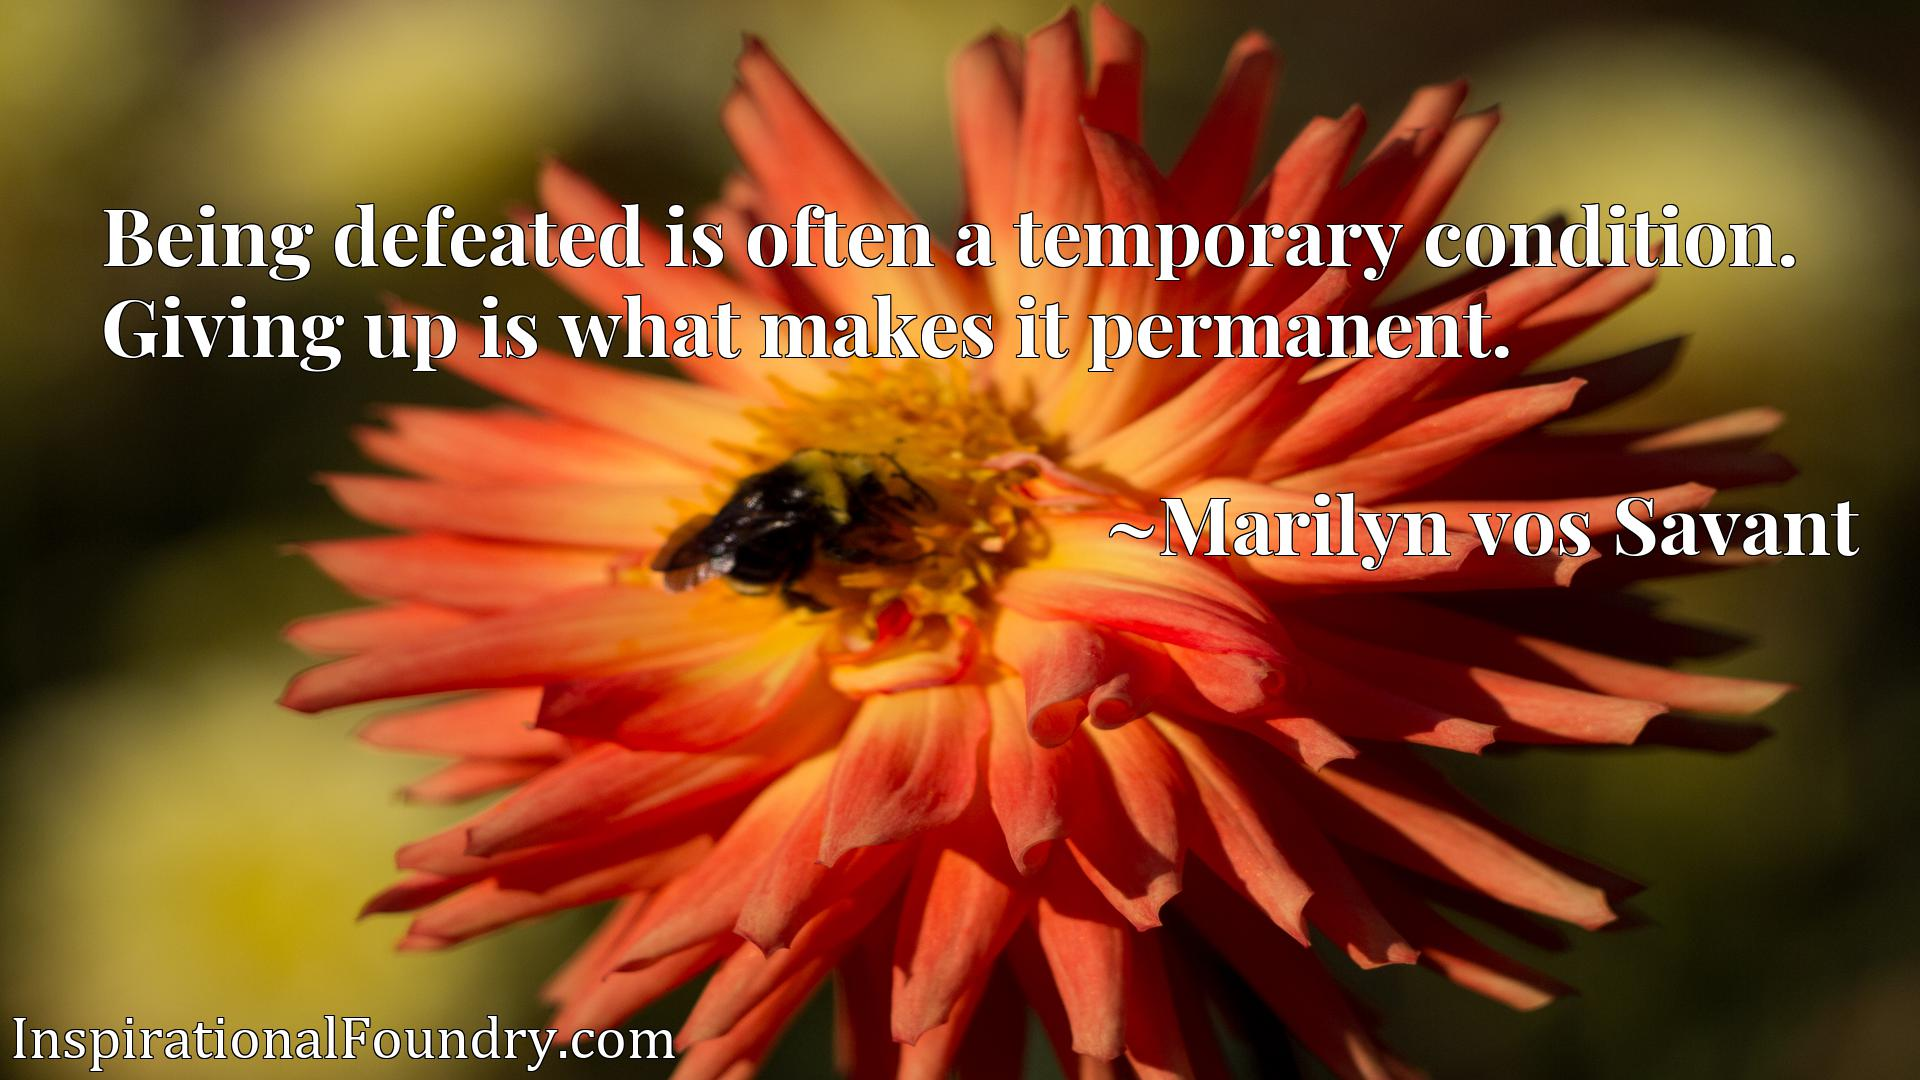 Being defeated is often a temporary condition. Giving up is what makes it permanent.